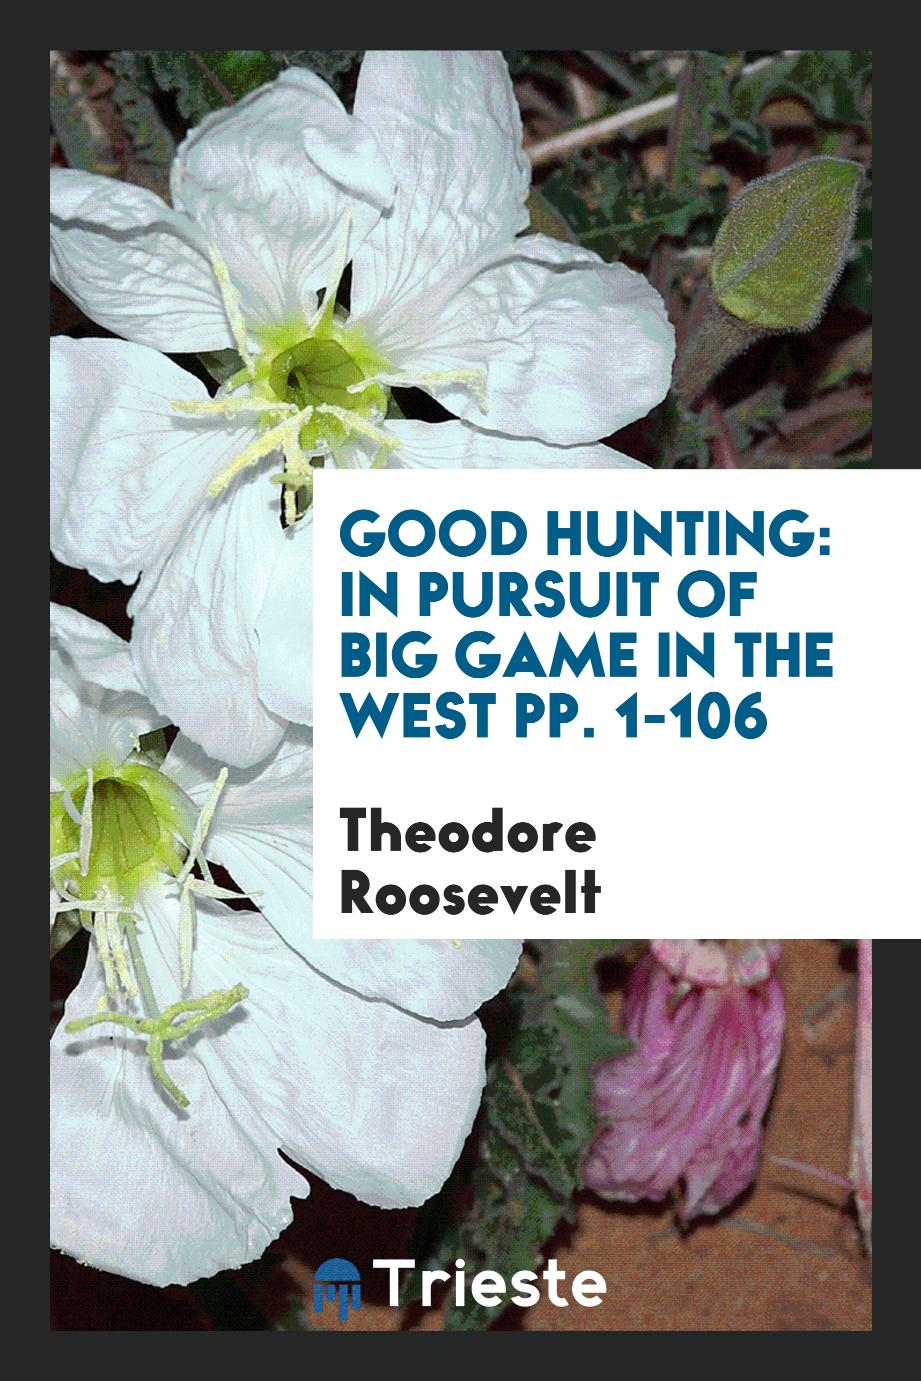 Good Hunting: In Pursuit of Big Game in the West pp. 1-106